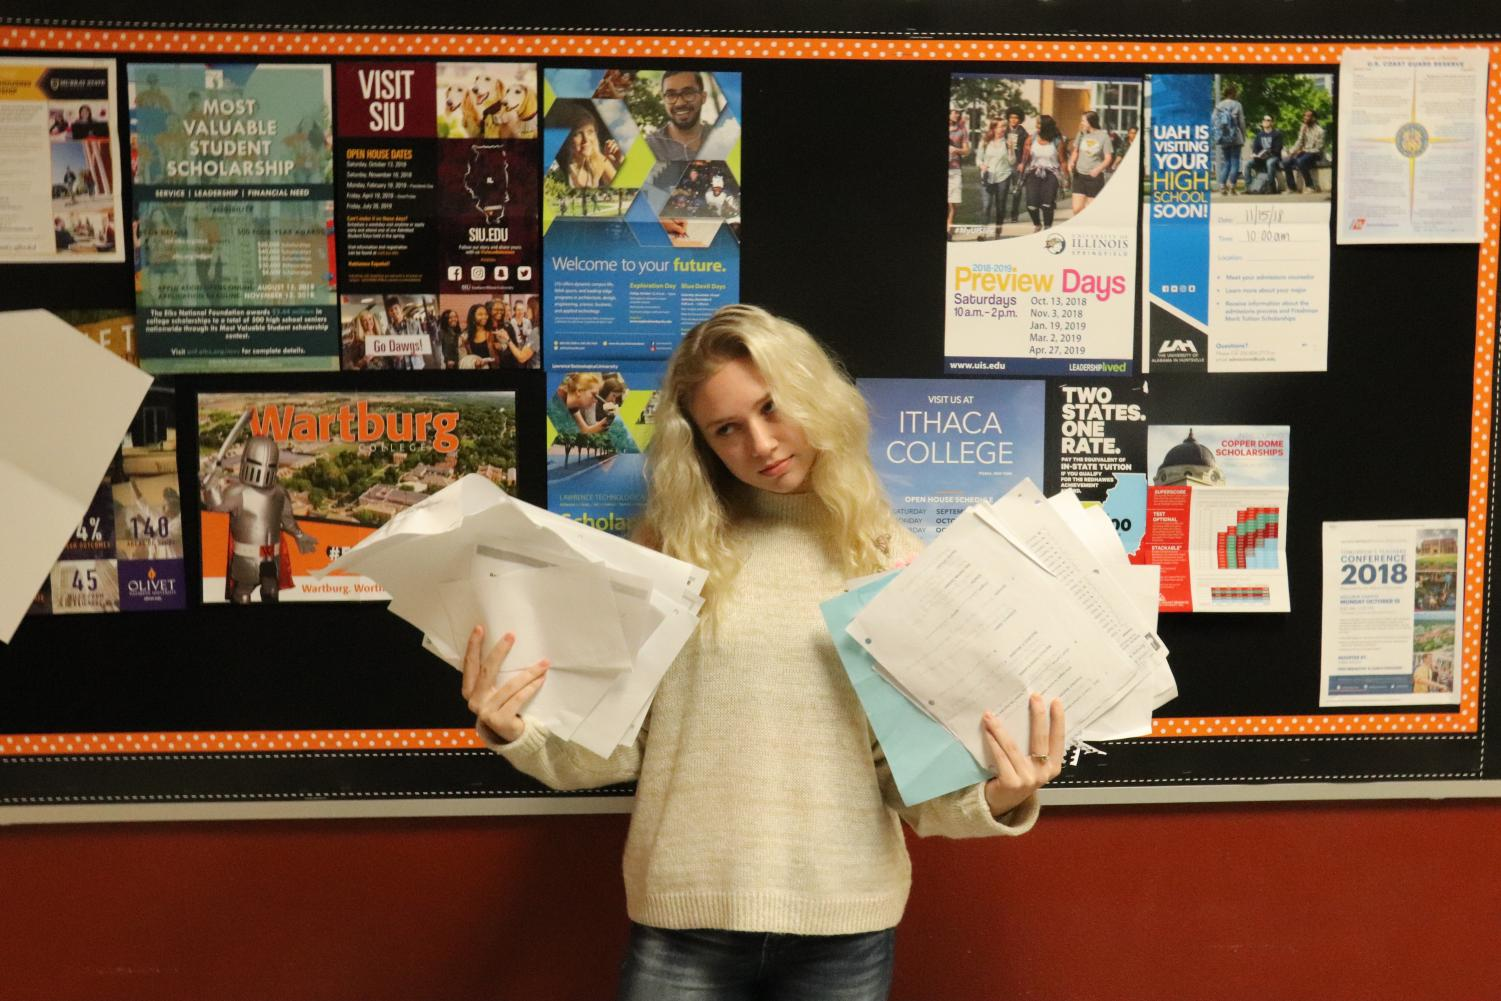 Ashlyn Baldi stresses over the massive amounts of college scholarship and entrance forms.